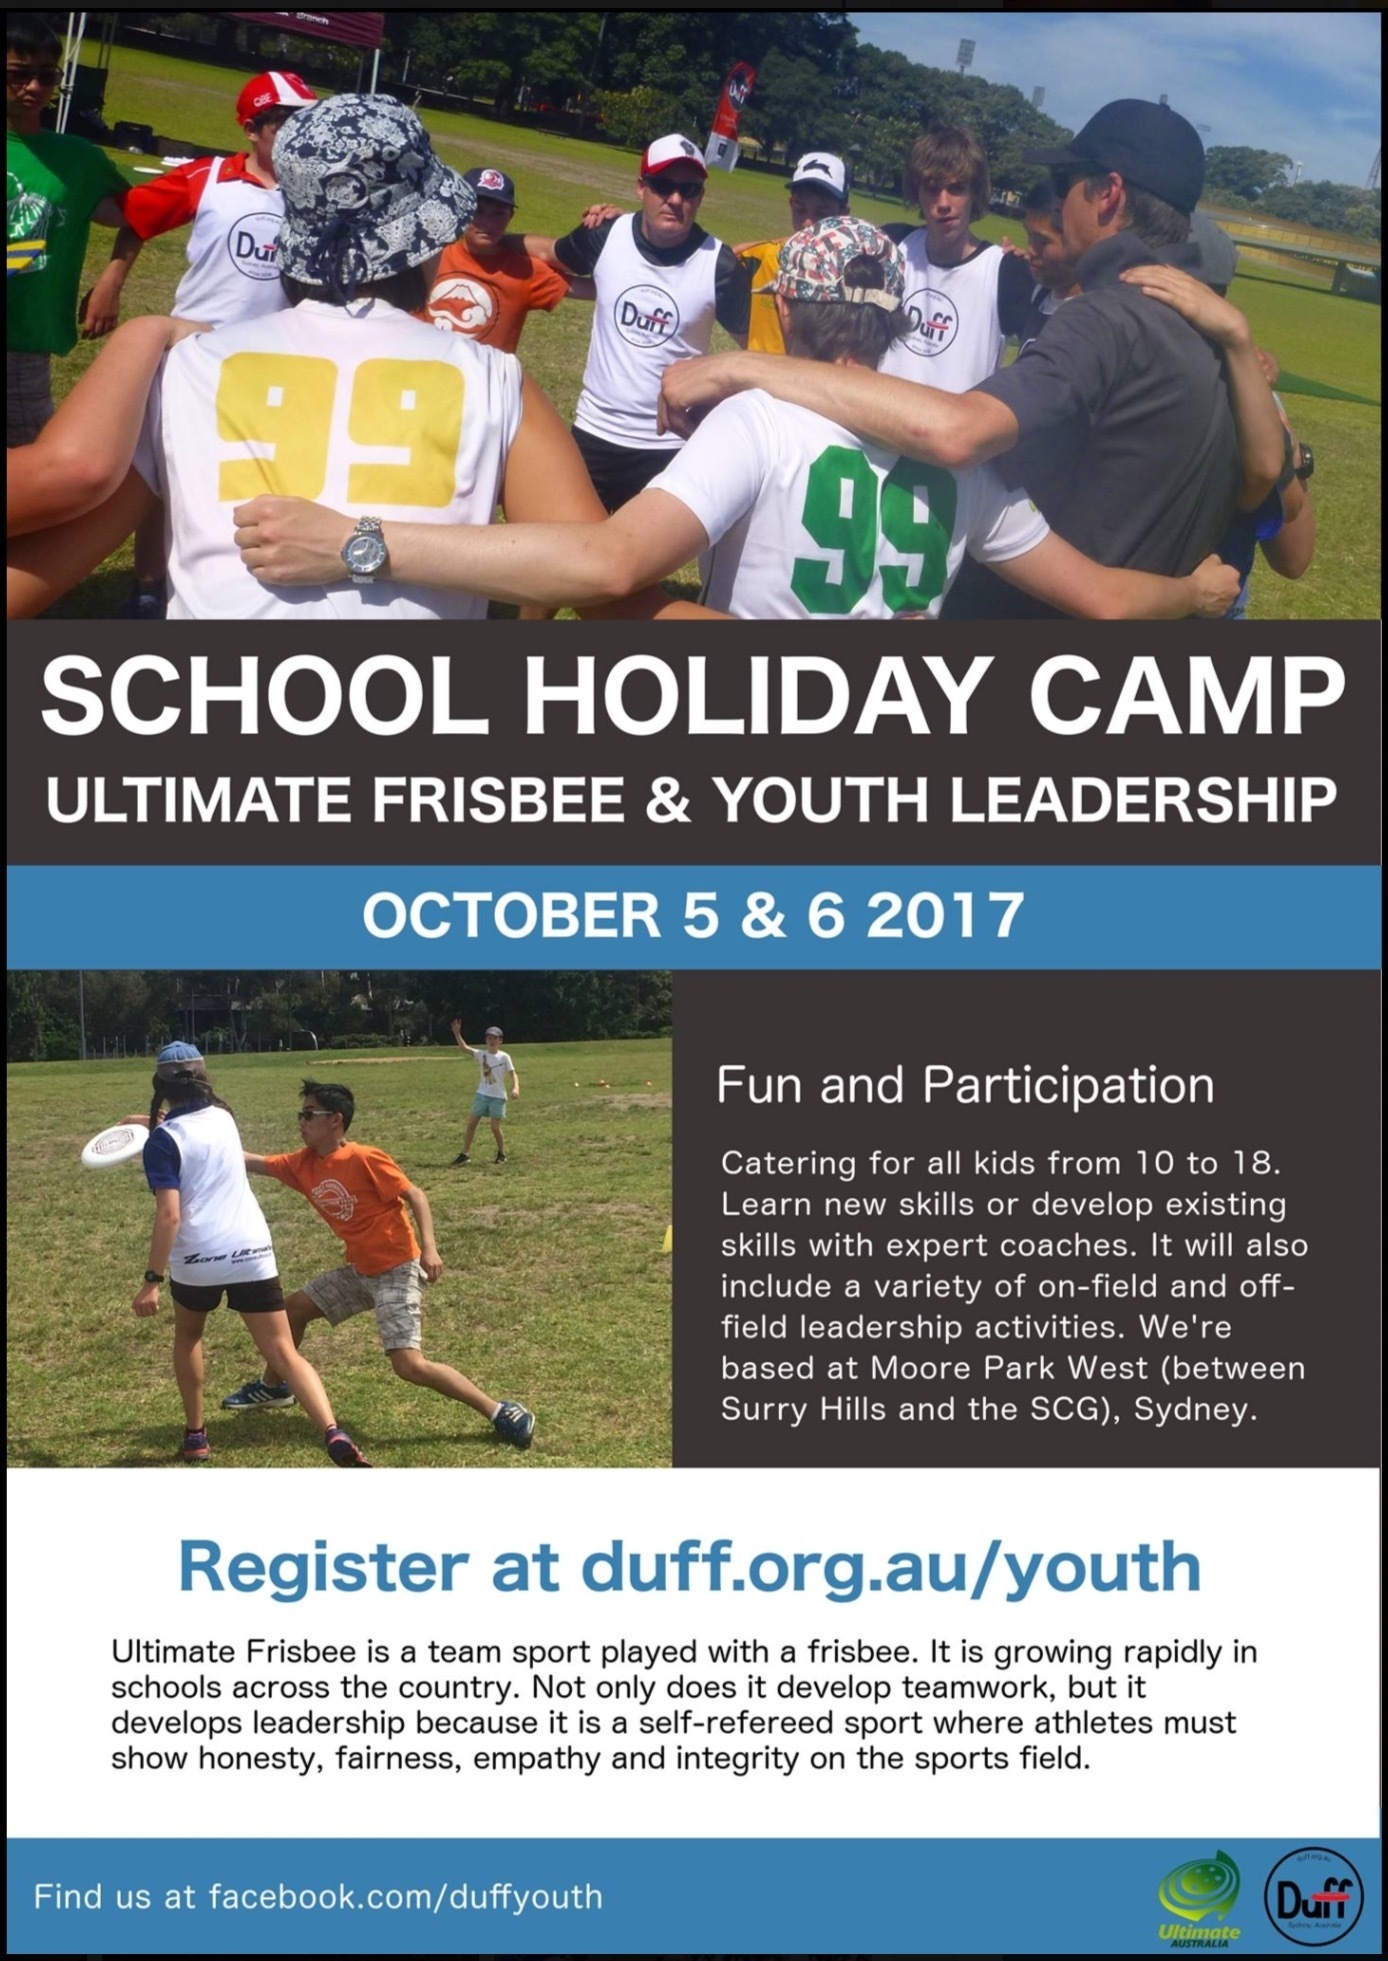 Youth - Darlinghurst Ultimate Frisbee Federation